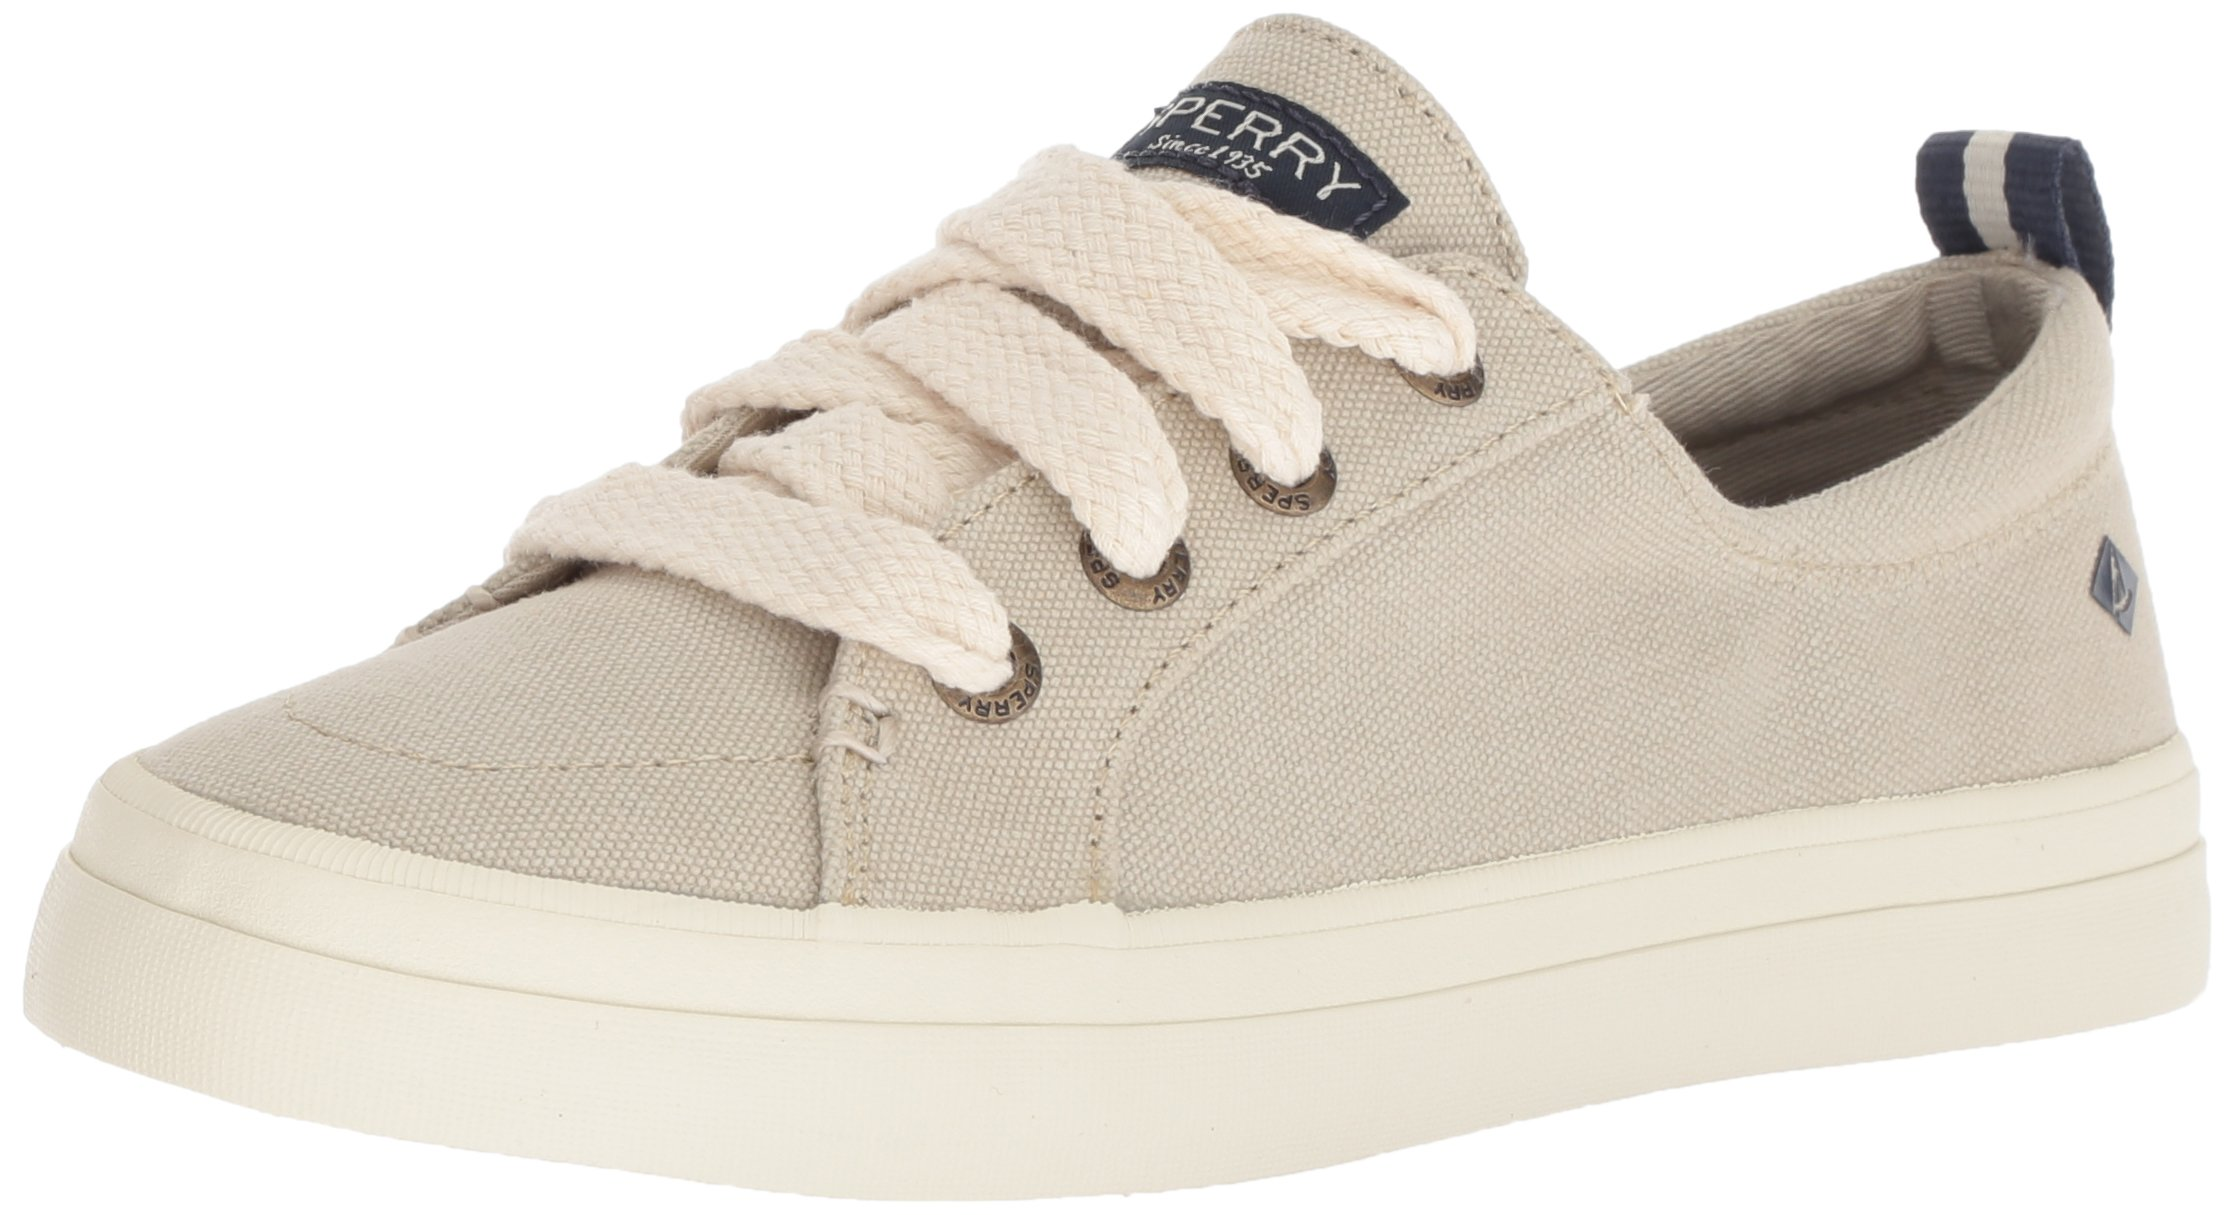 Sperry Top-Sider Women's Crest Vibe Chubby Lace Sneaker, Ivory, 8.5 M US